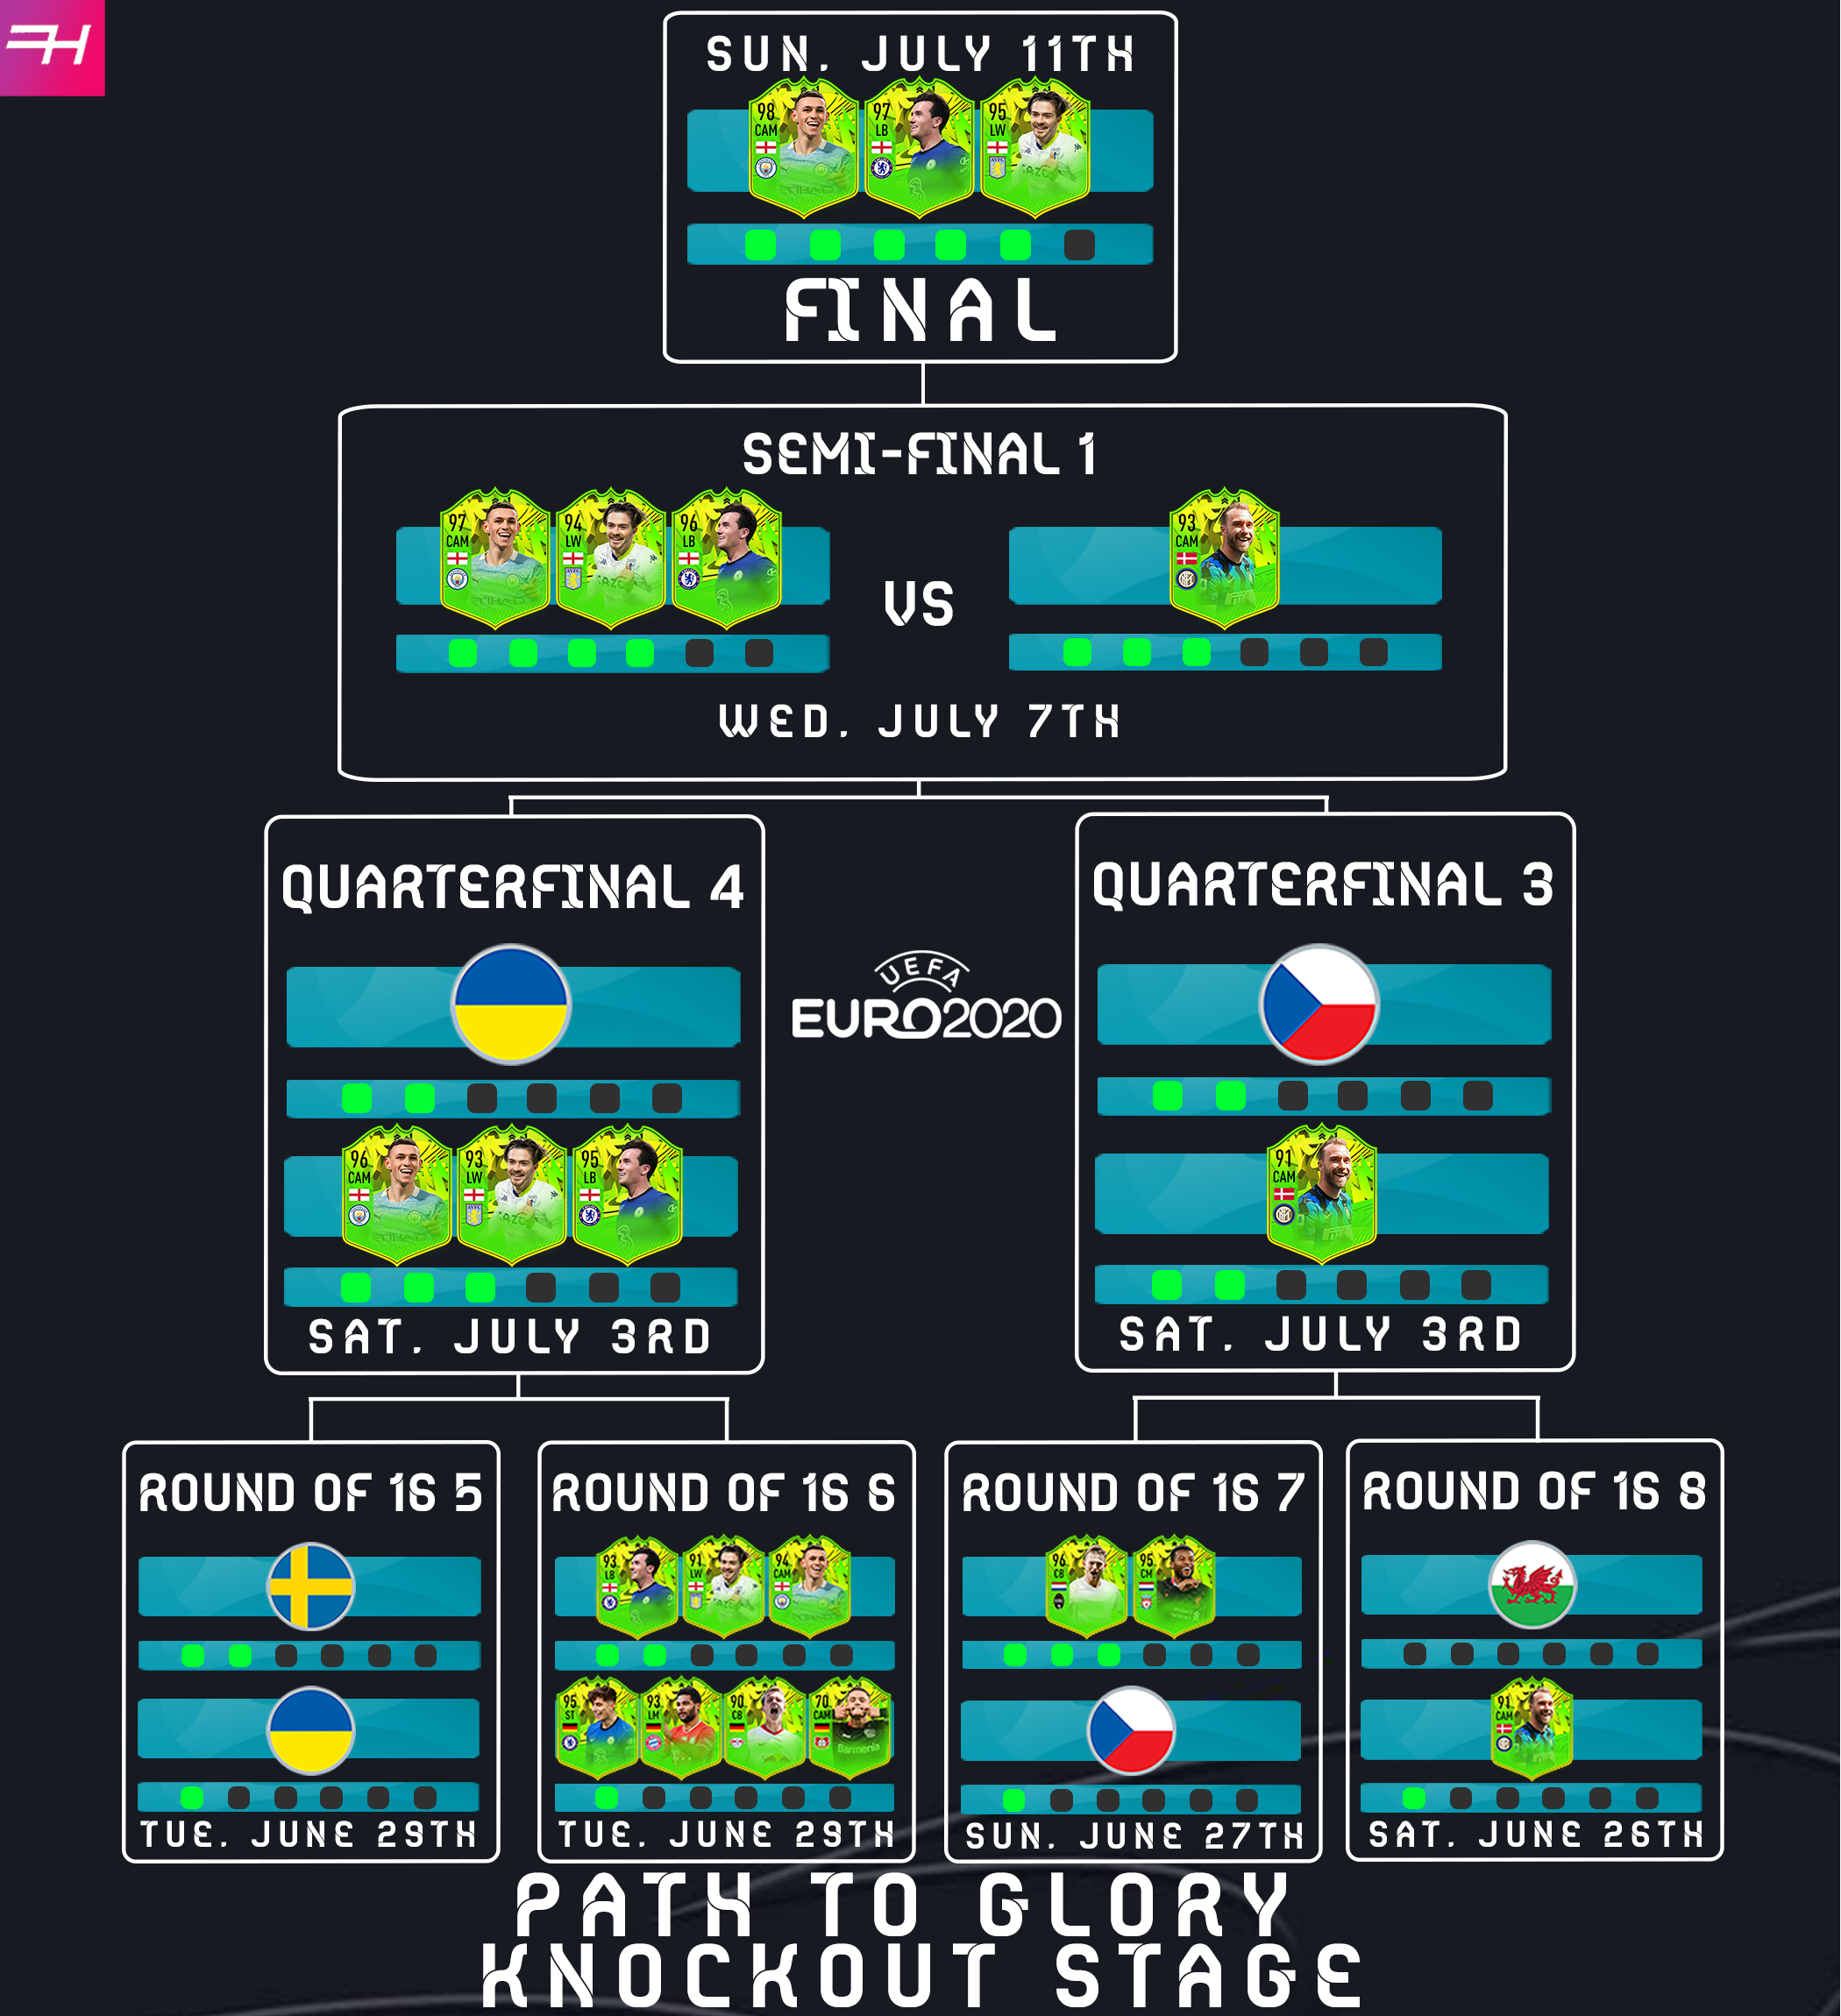 Path To Glory Festival of Football Knockout Stage Euro 2020 Euros Tracker Track